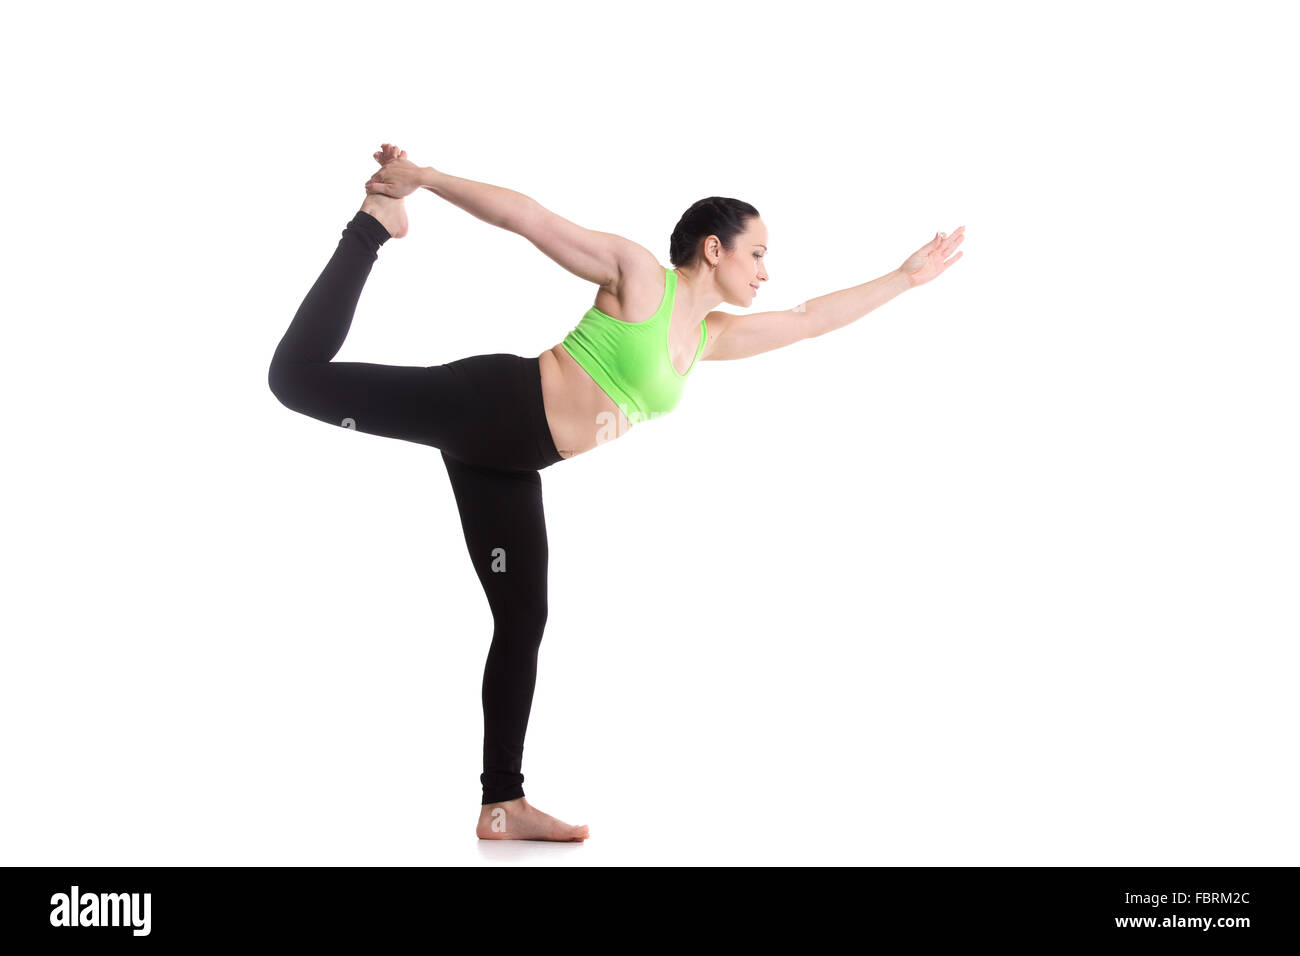 Beautiful sporty girl practices yoga, performing Natarajasana, Lord of the Dance pose, balance workout, full body - Stock Image